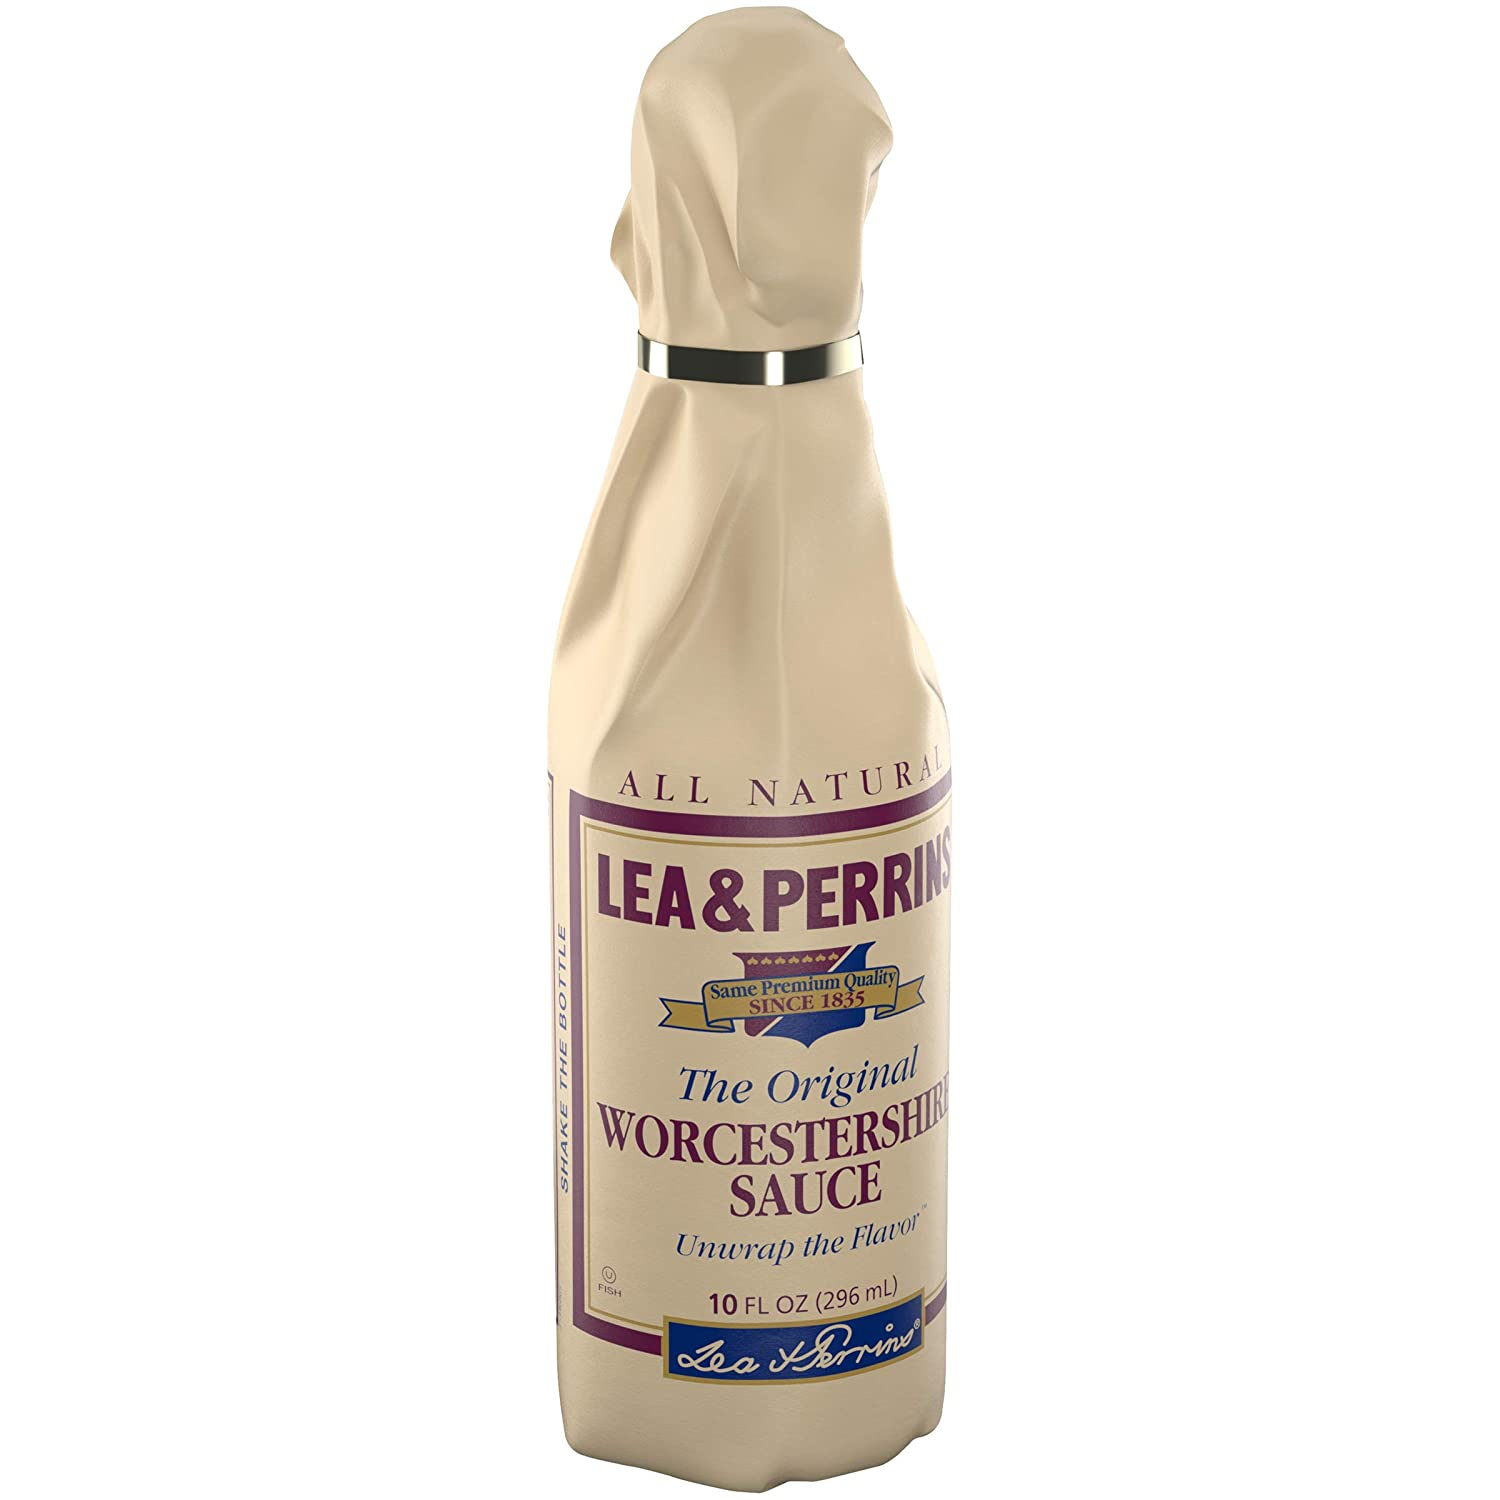 is lea and perrins worcestershire sauce gluten free